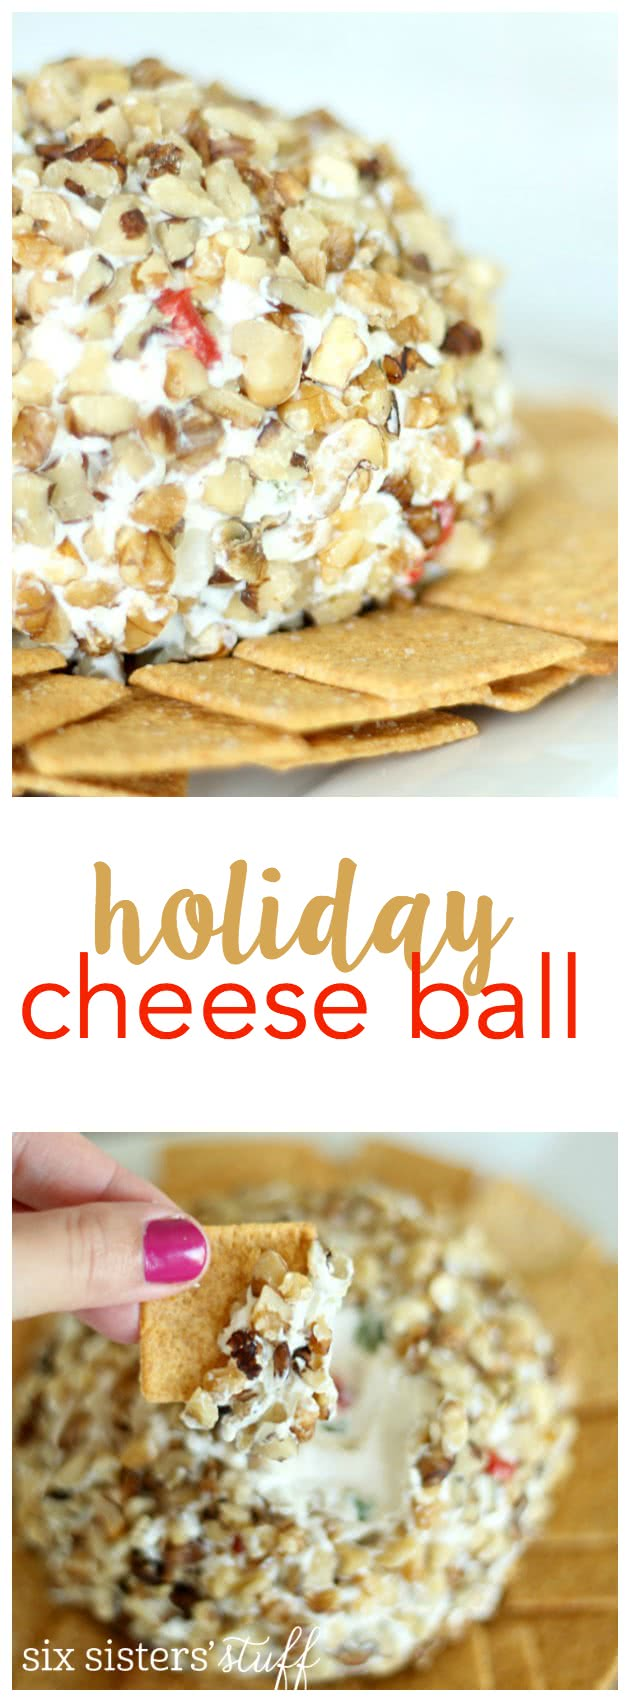 This cheese ball is perfect for your next holiday party! SixSistersStuff.com